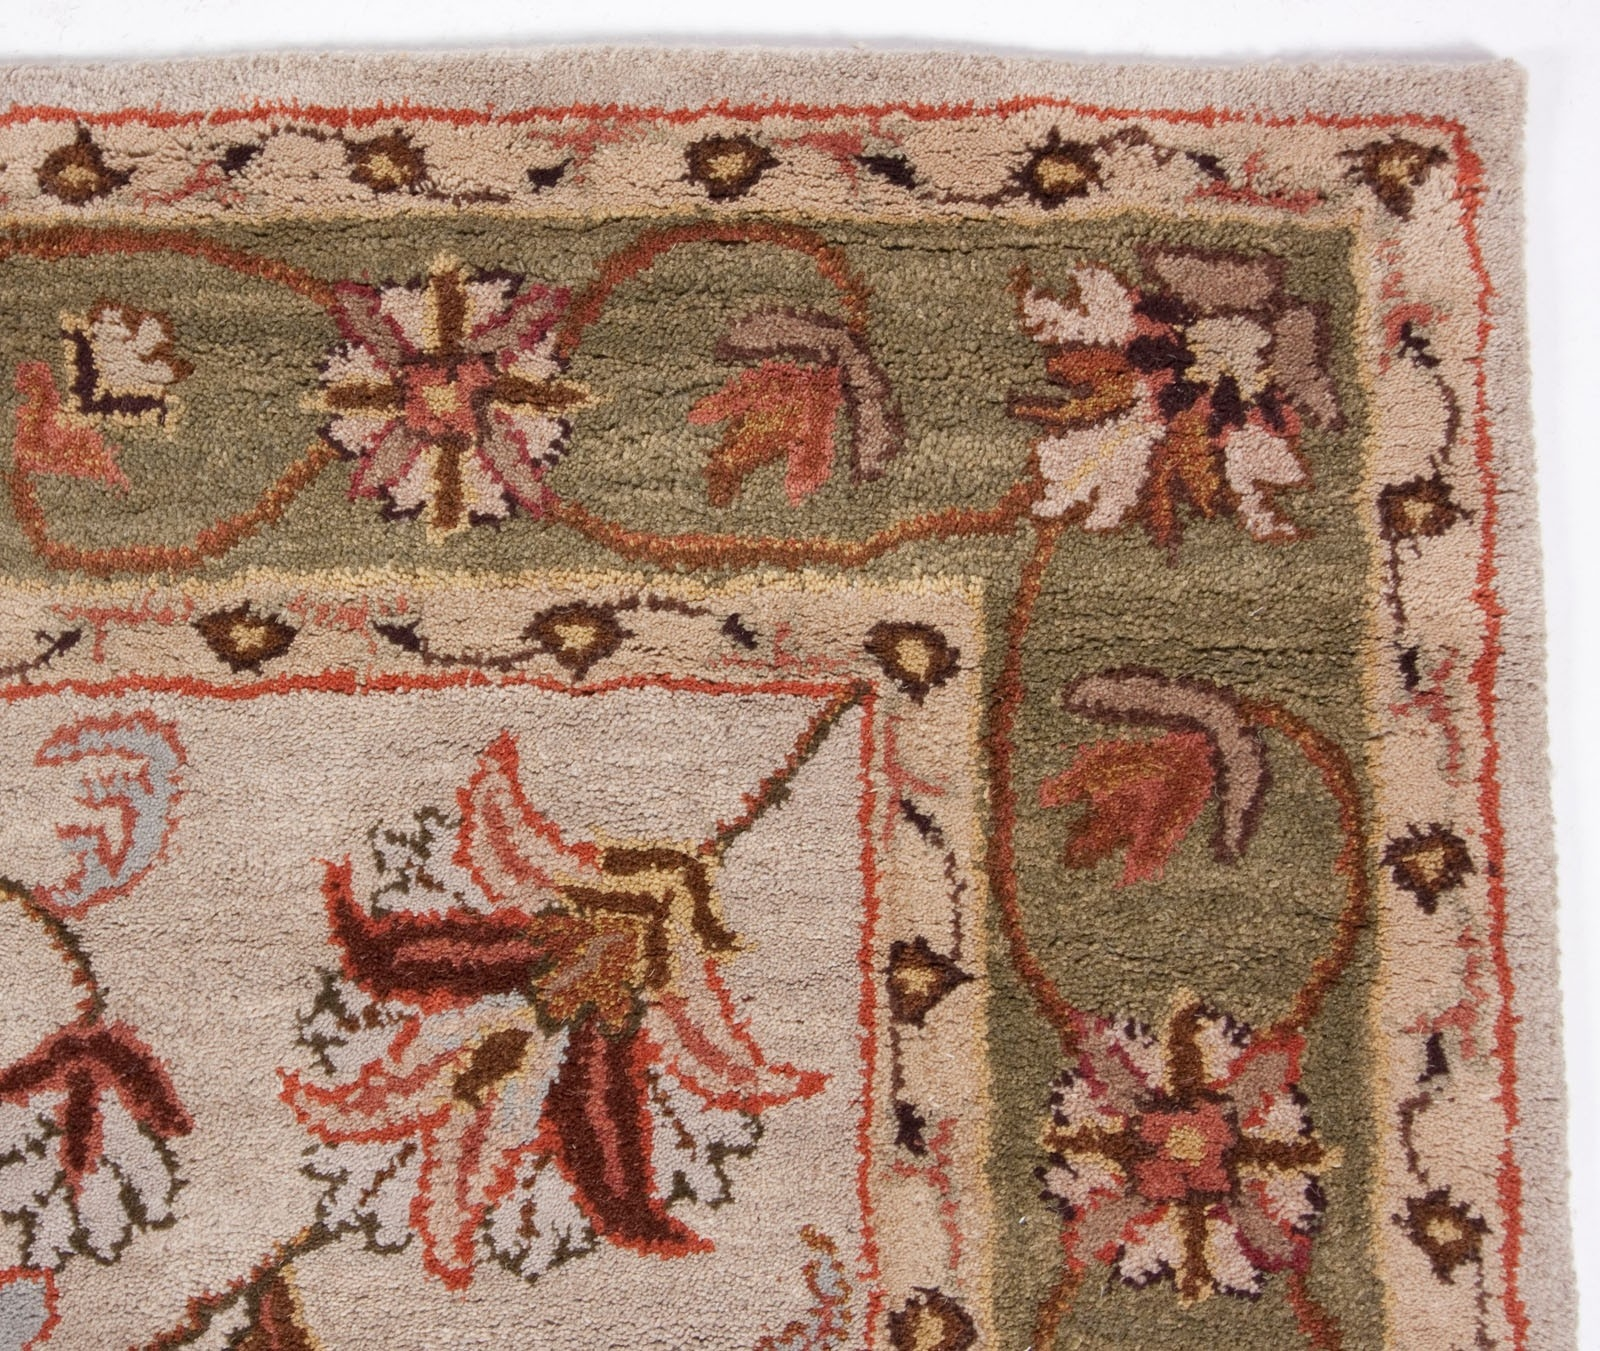 Wool Area Rugs Elliot Red Floral Wool Handtufted Area Rug Image In 5×8 Wool Area Rugs (#14 of 15)